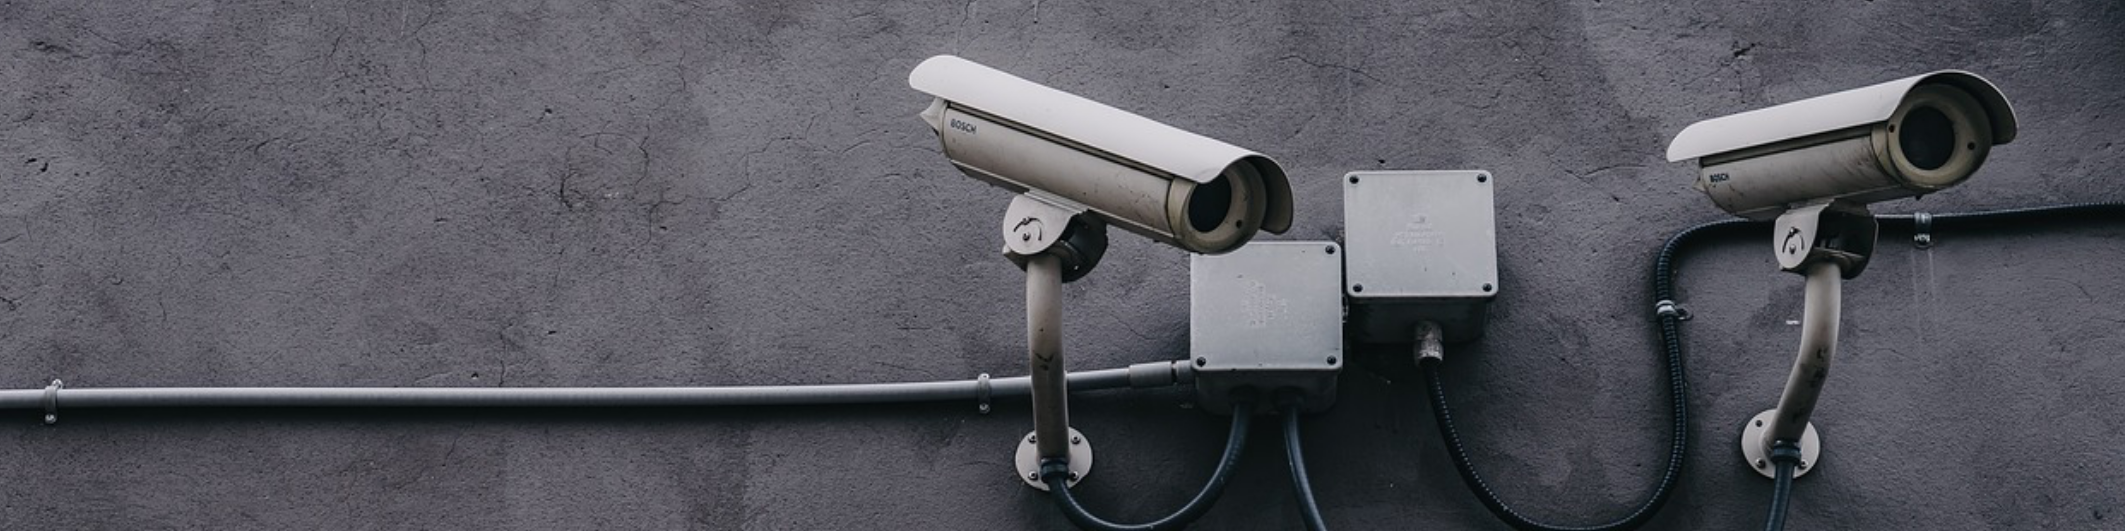 List of tenders for protection and security cameras